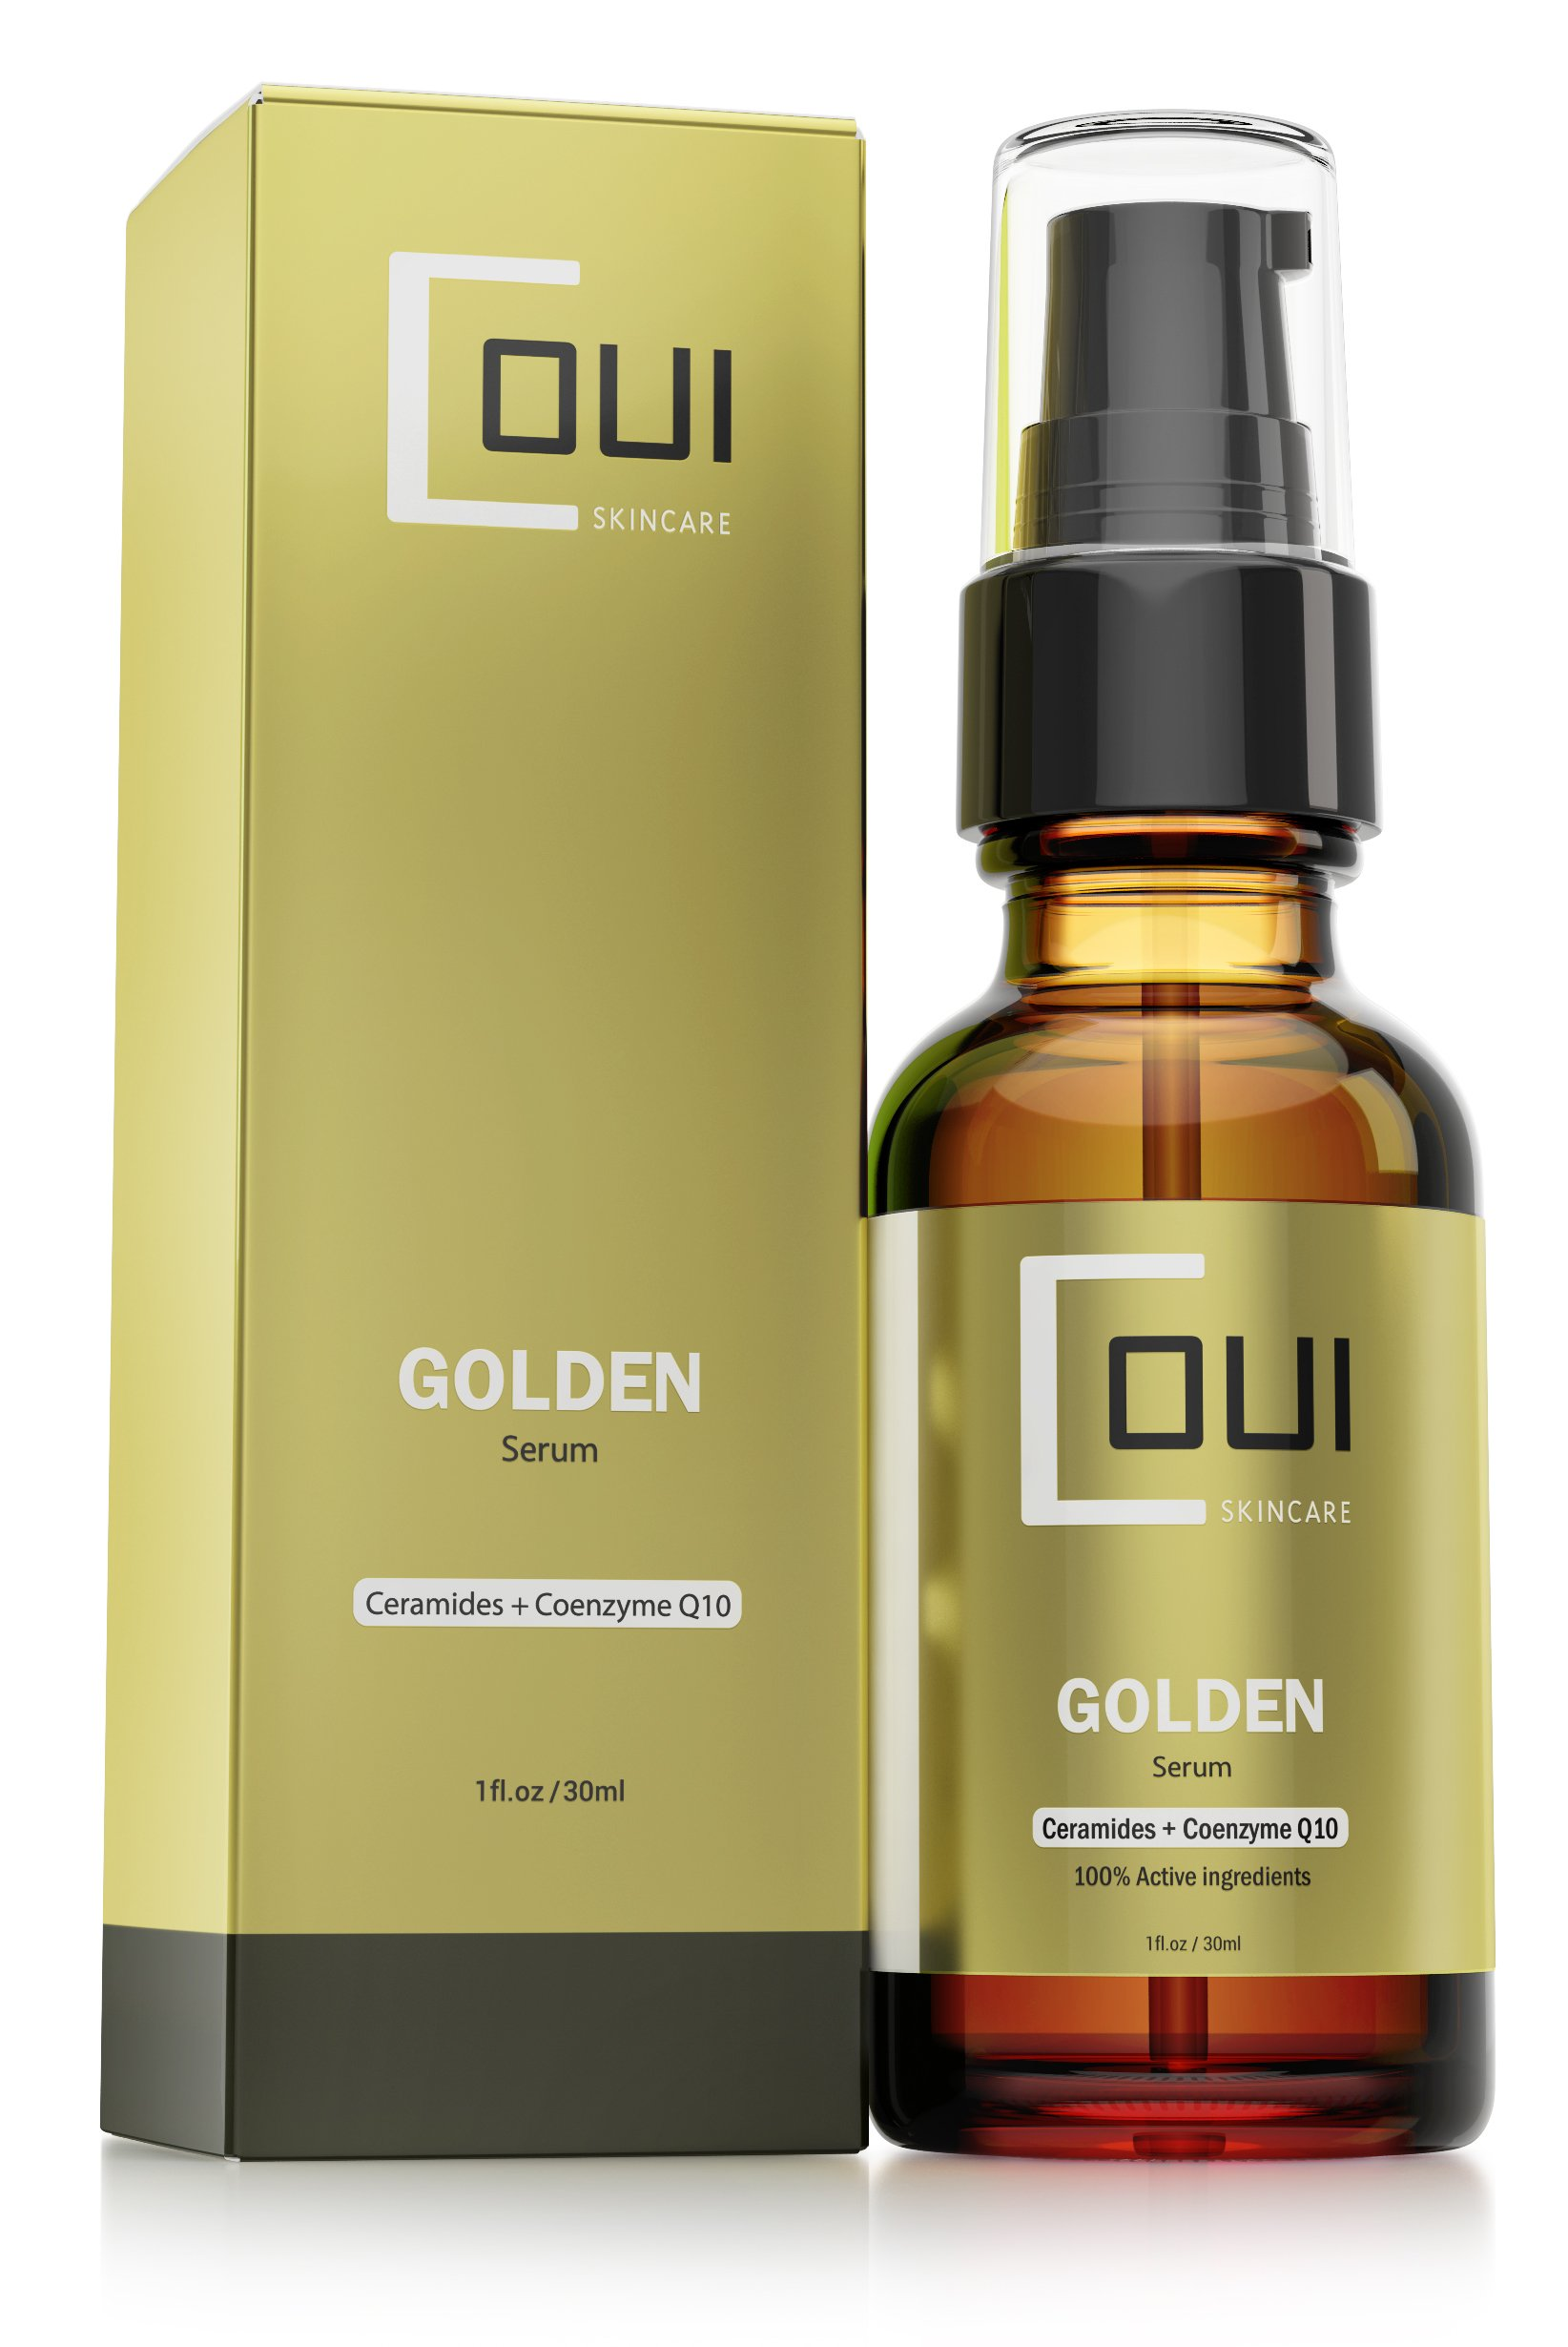 GOLDEN Facial Serum Anti Aging Hydration - Coenzyme Q10, Argan Oil, Natural Ingredients for Face, Neck, Dry Skin